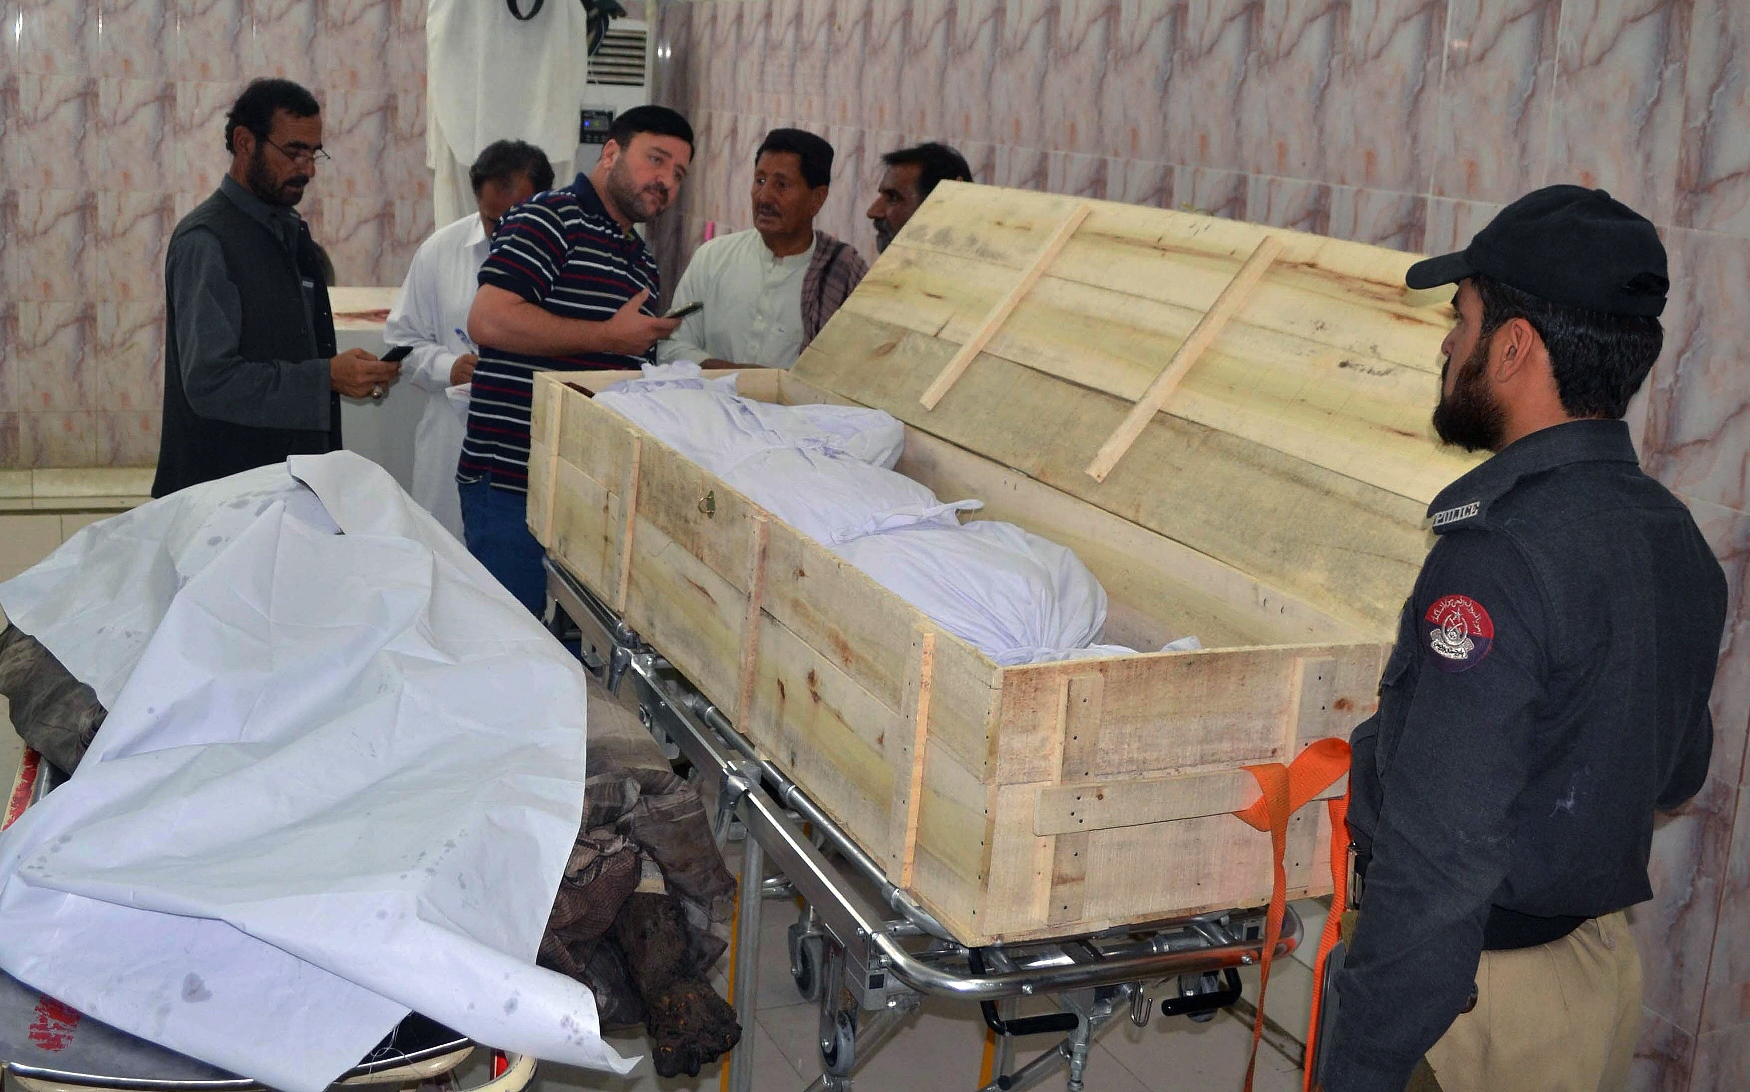 Security officials and hospital staff stand next to unidentified dead bodies placed on stretchers at a morgue in a hospital in Quetta on May 22, 2016, which were brought following a drone strike in the remote town of Ahmad Wal in Balochistan that targeted Afghan Taliban chief Mullah Akhtar Mansour. PHOTO: AFP